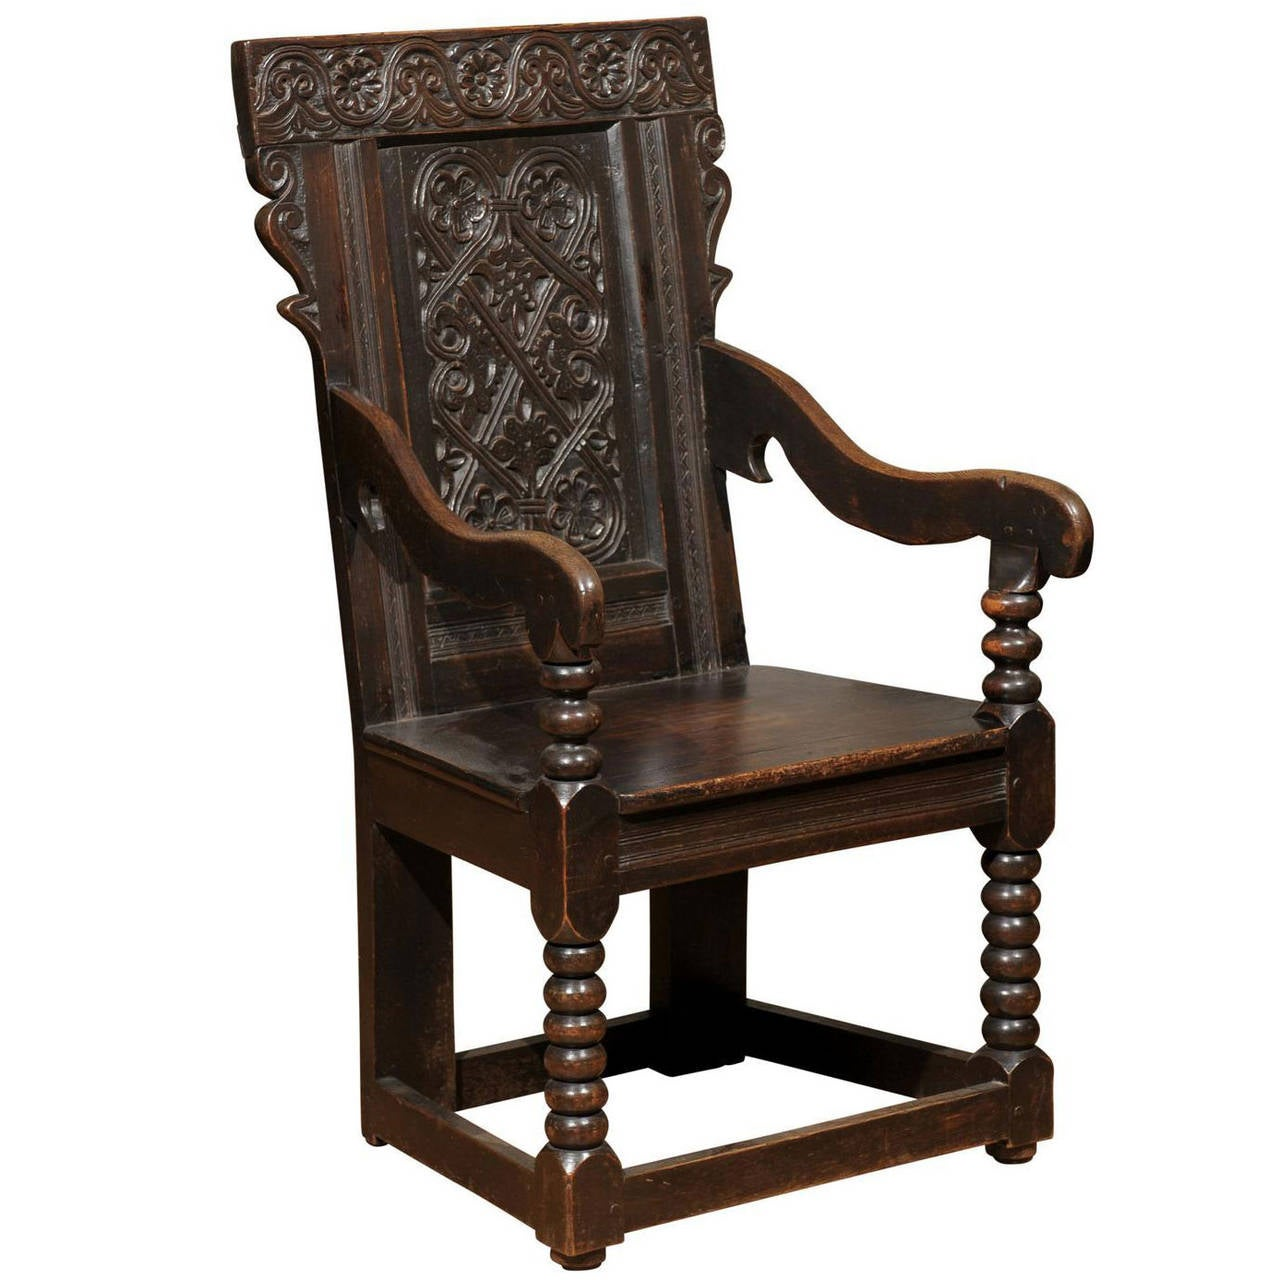 Th century oak carved chair for sale at stdibs